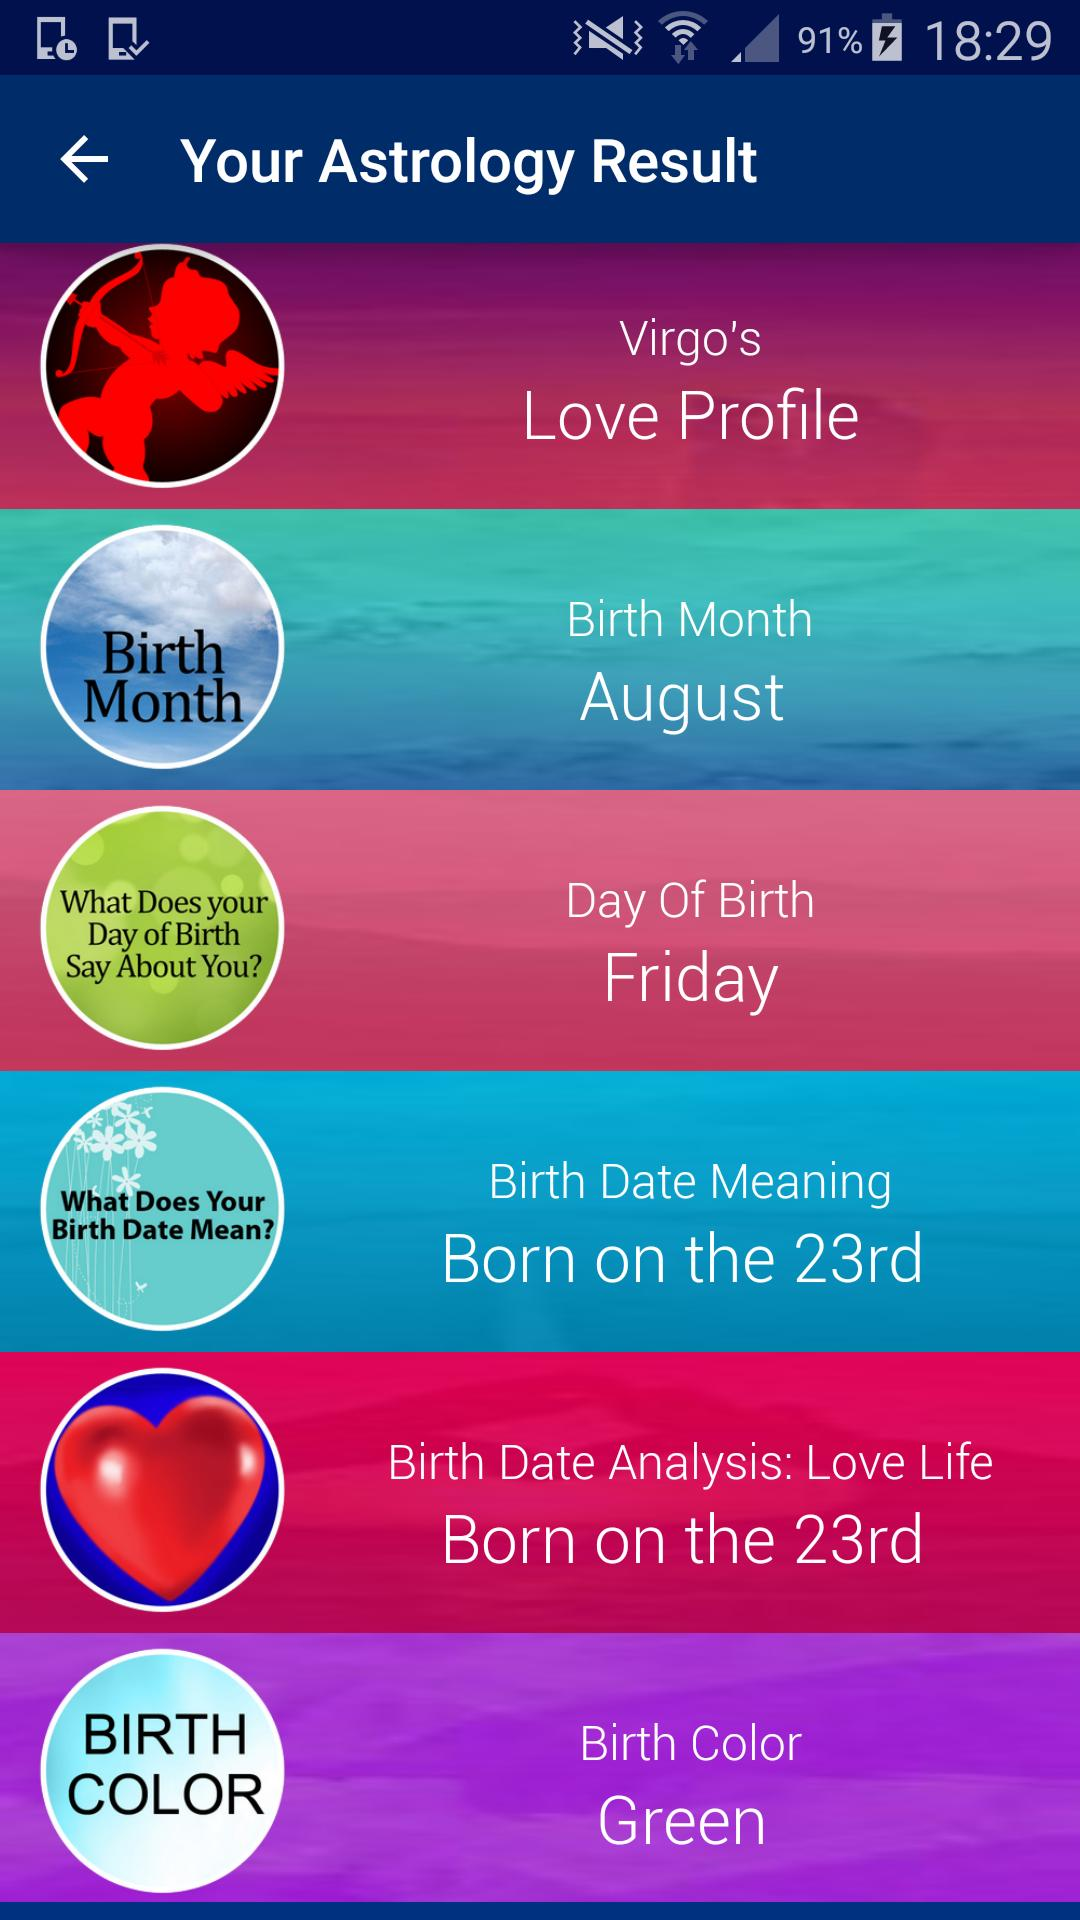 Complete Astrology for Android - APK Download